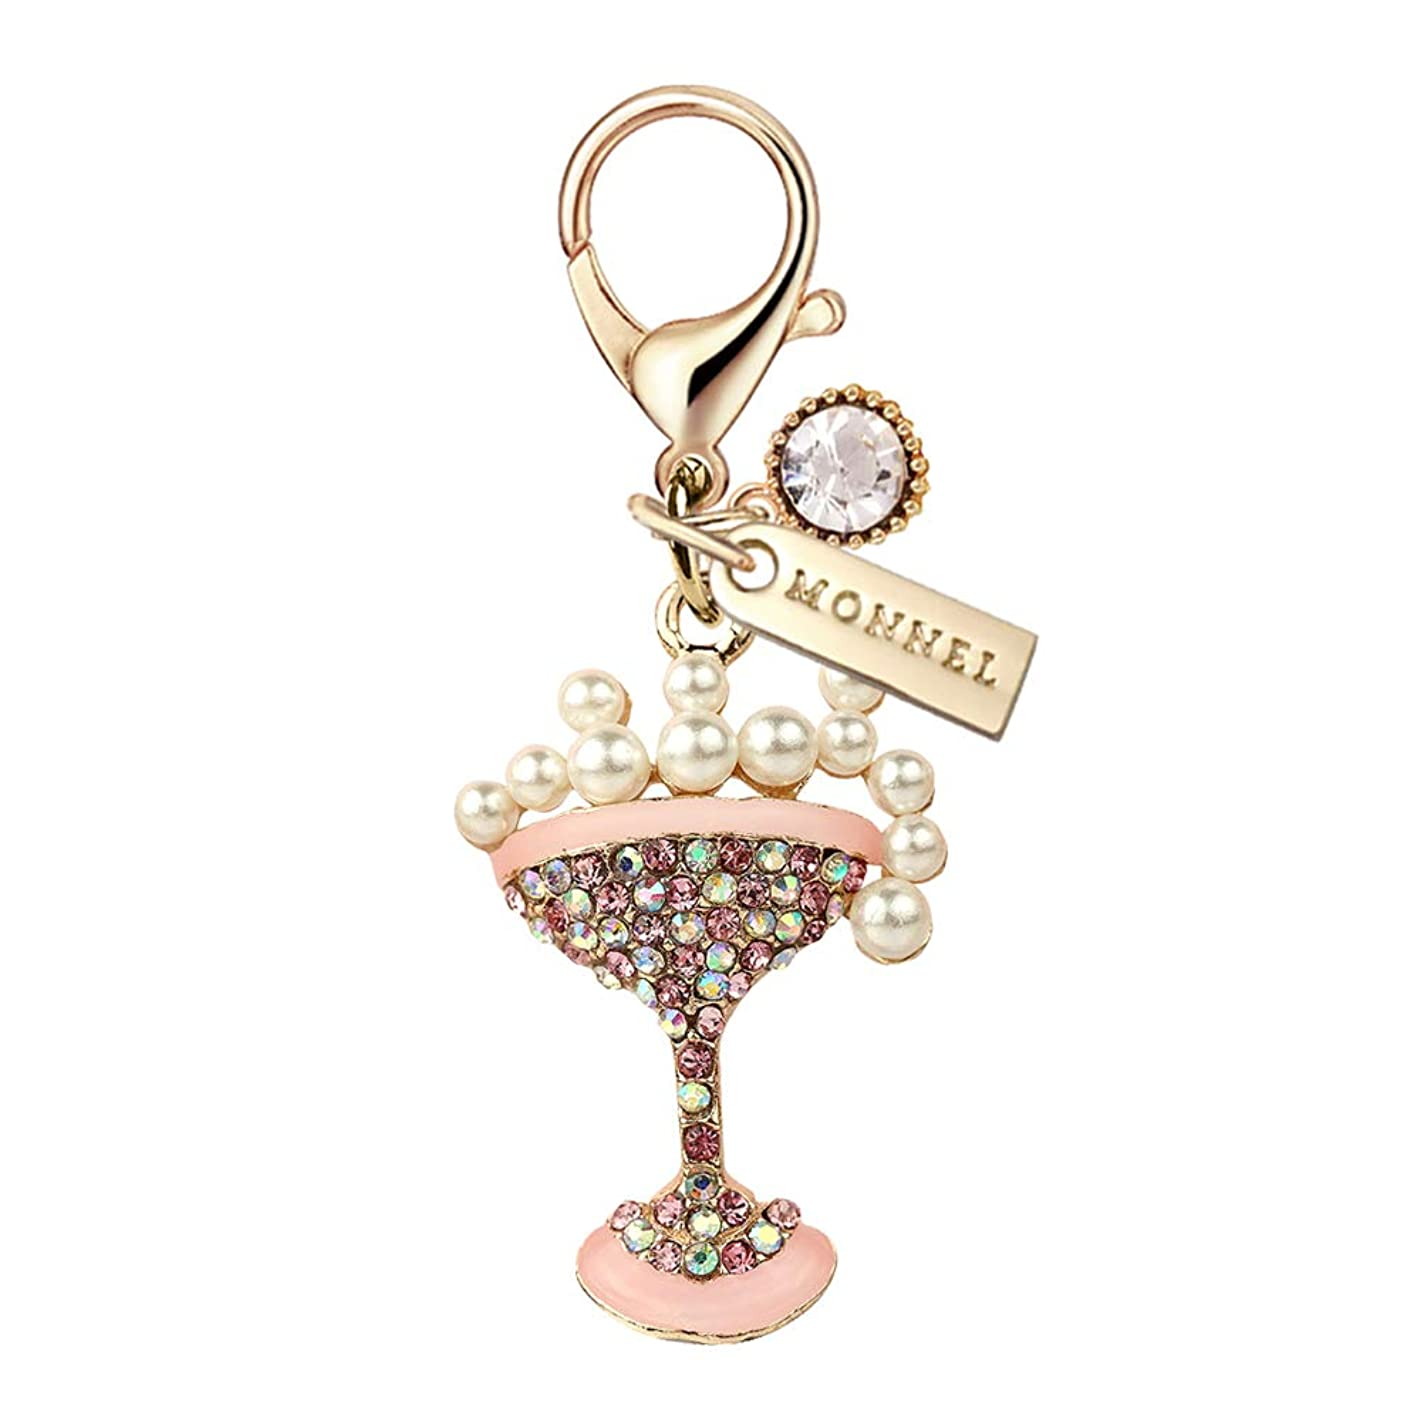 MC103 New Arrival Crystal Pink Cocktail Lobster Clasp Charm Pendant with Pouch Bag (1 Piece)